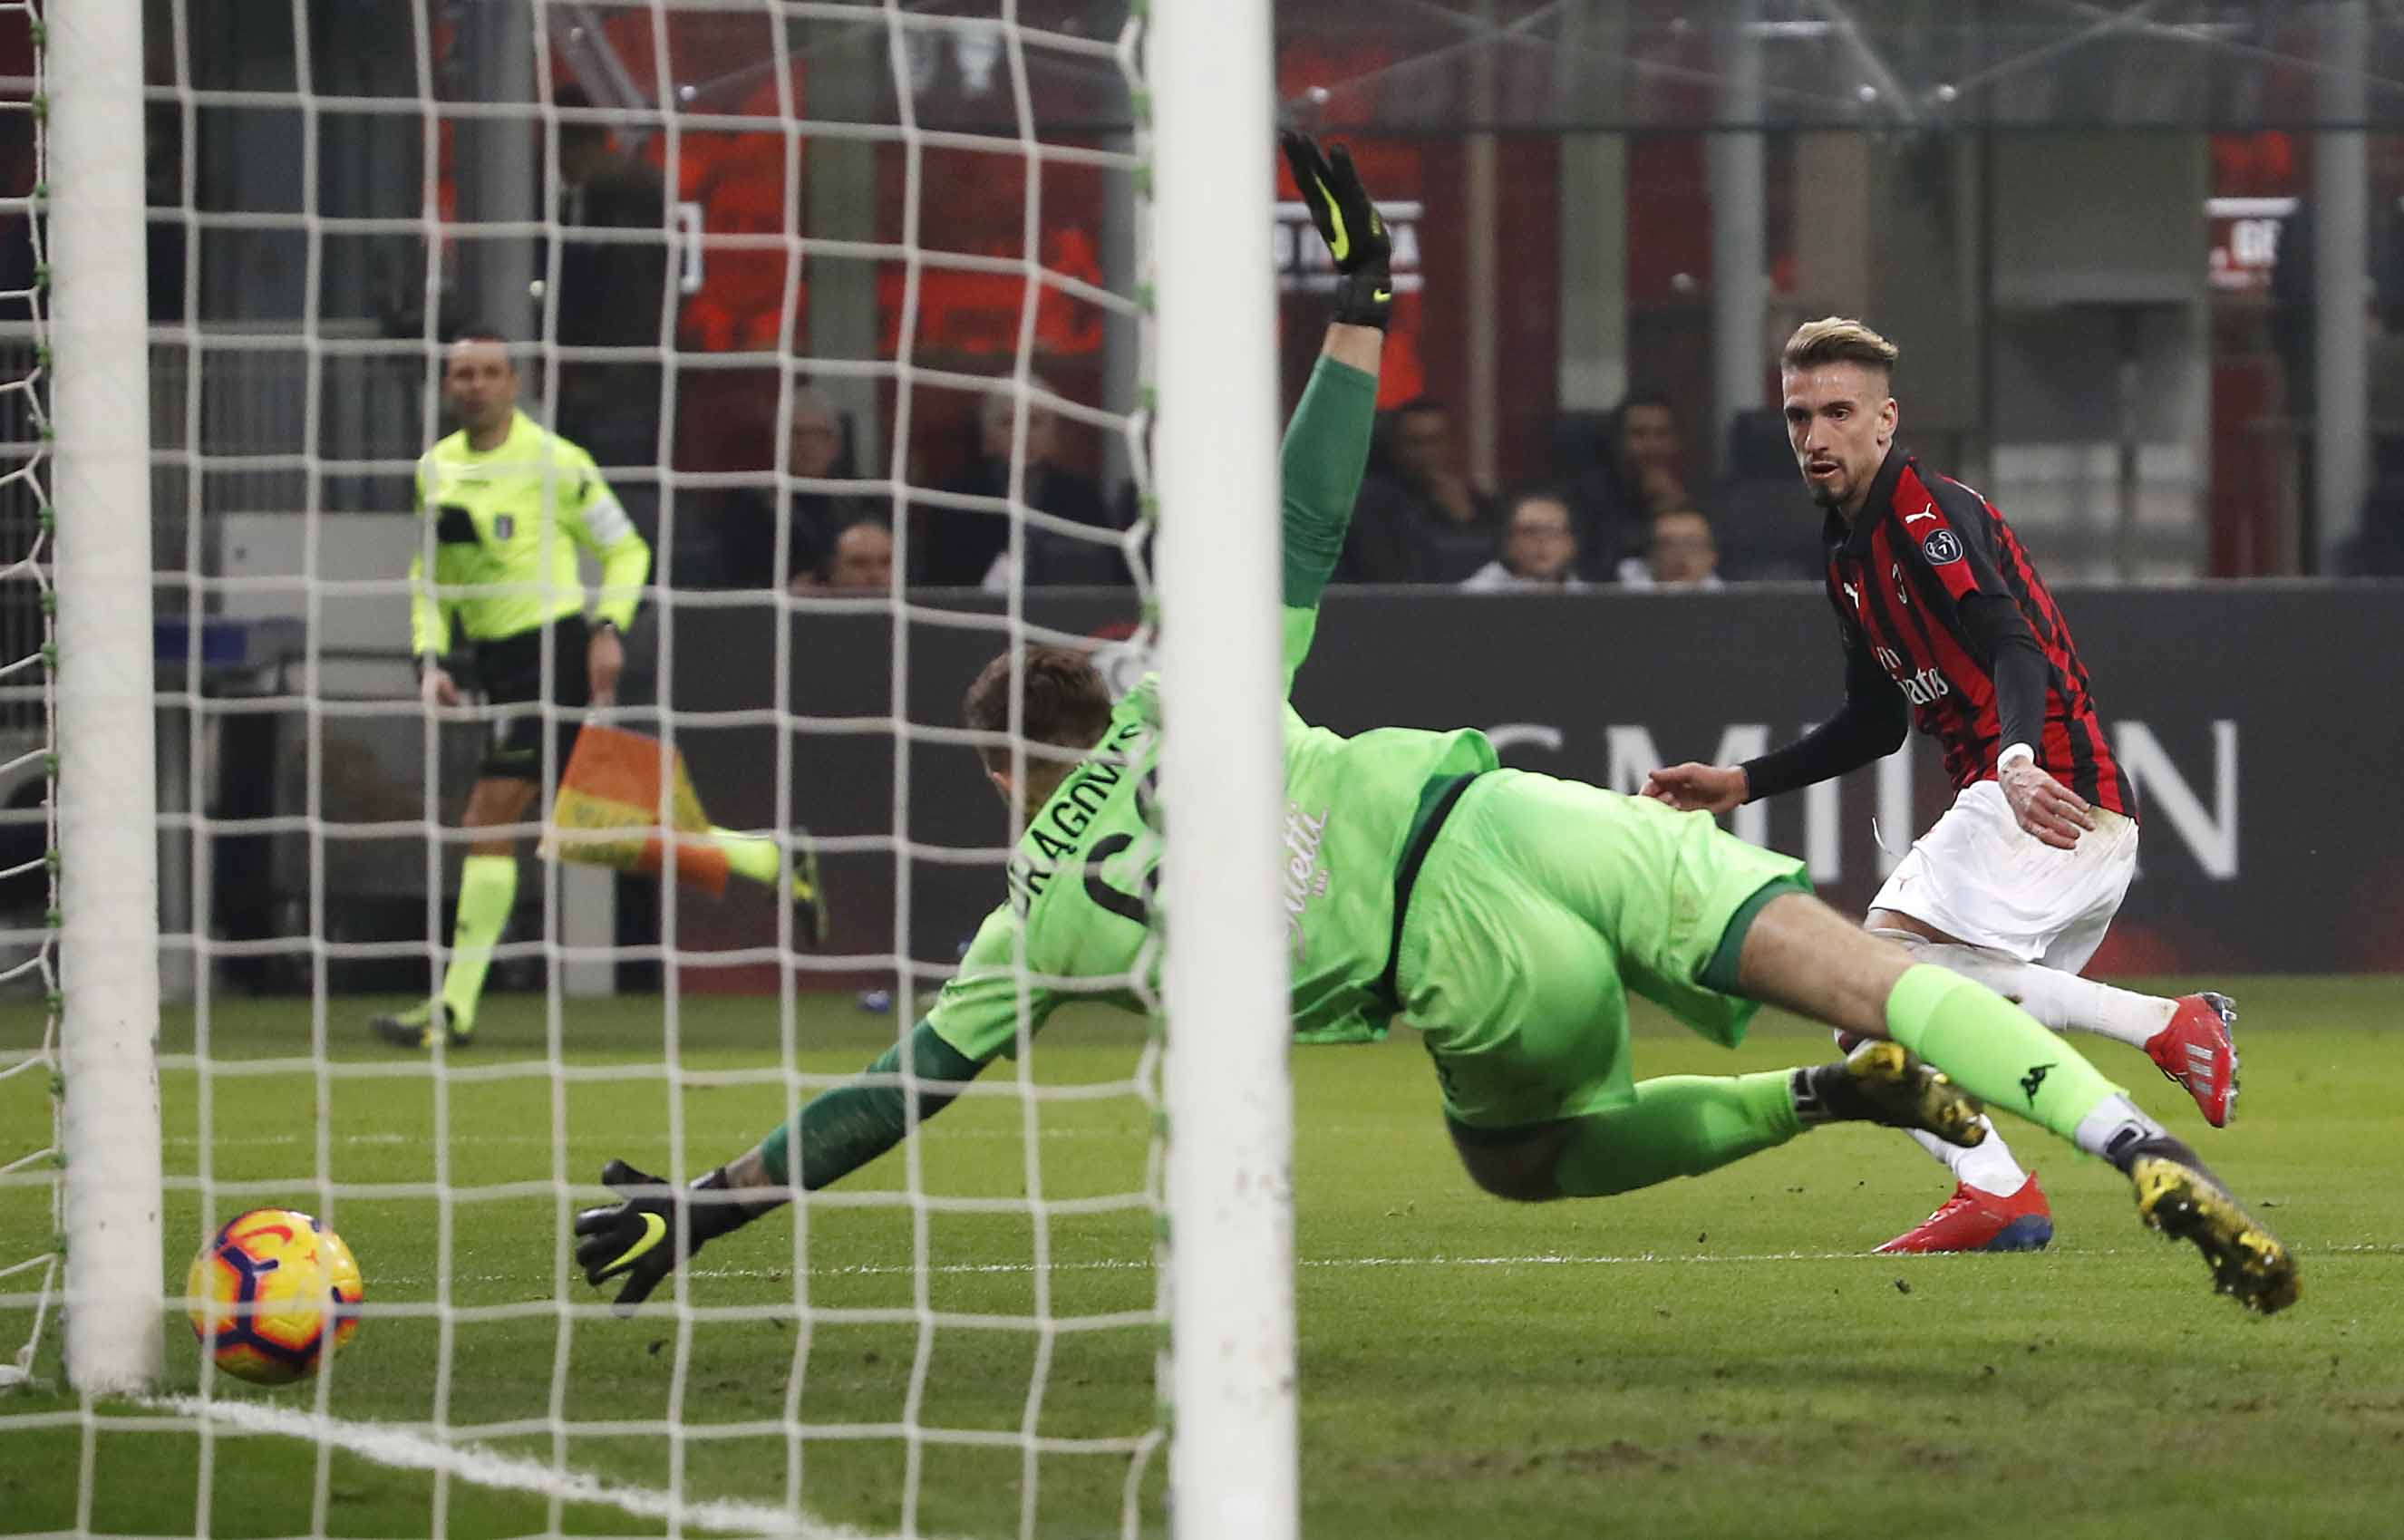 Piatek scores again as AC Milan beat Empoli 3-0 in Serie A